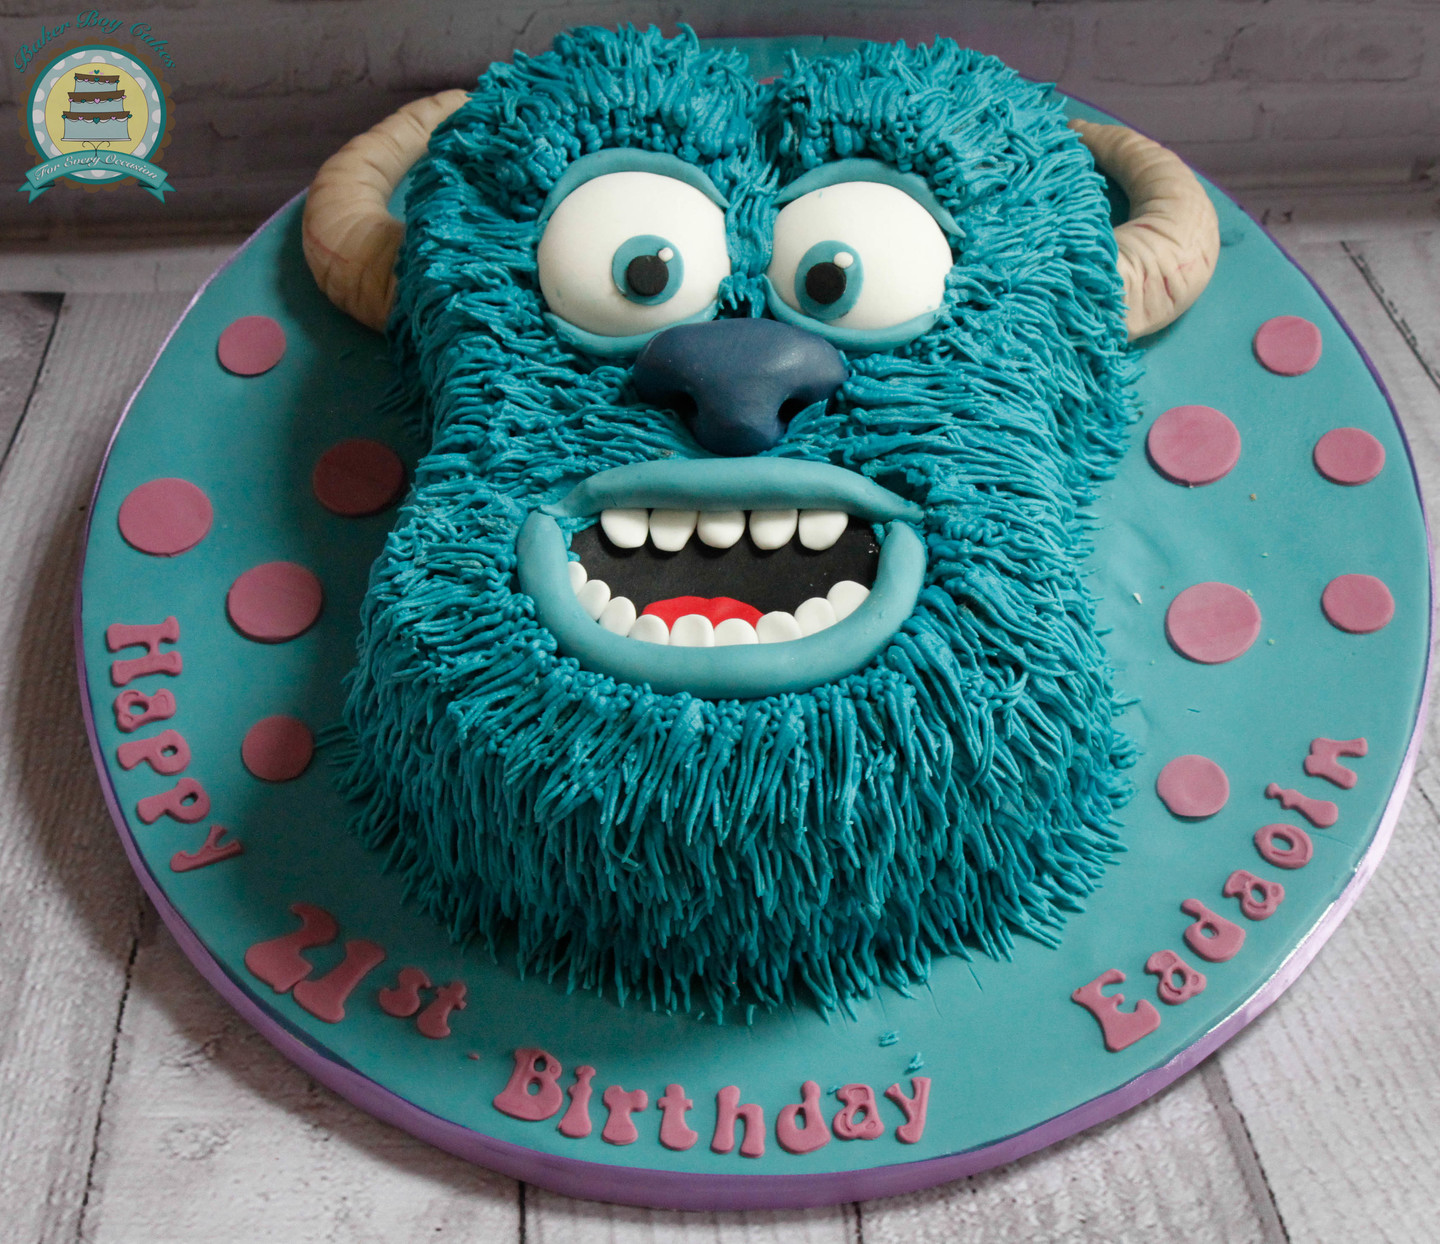 Baker Boy Cakes Cork Bakers And Cakers